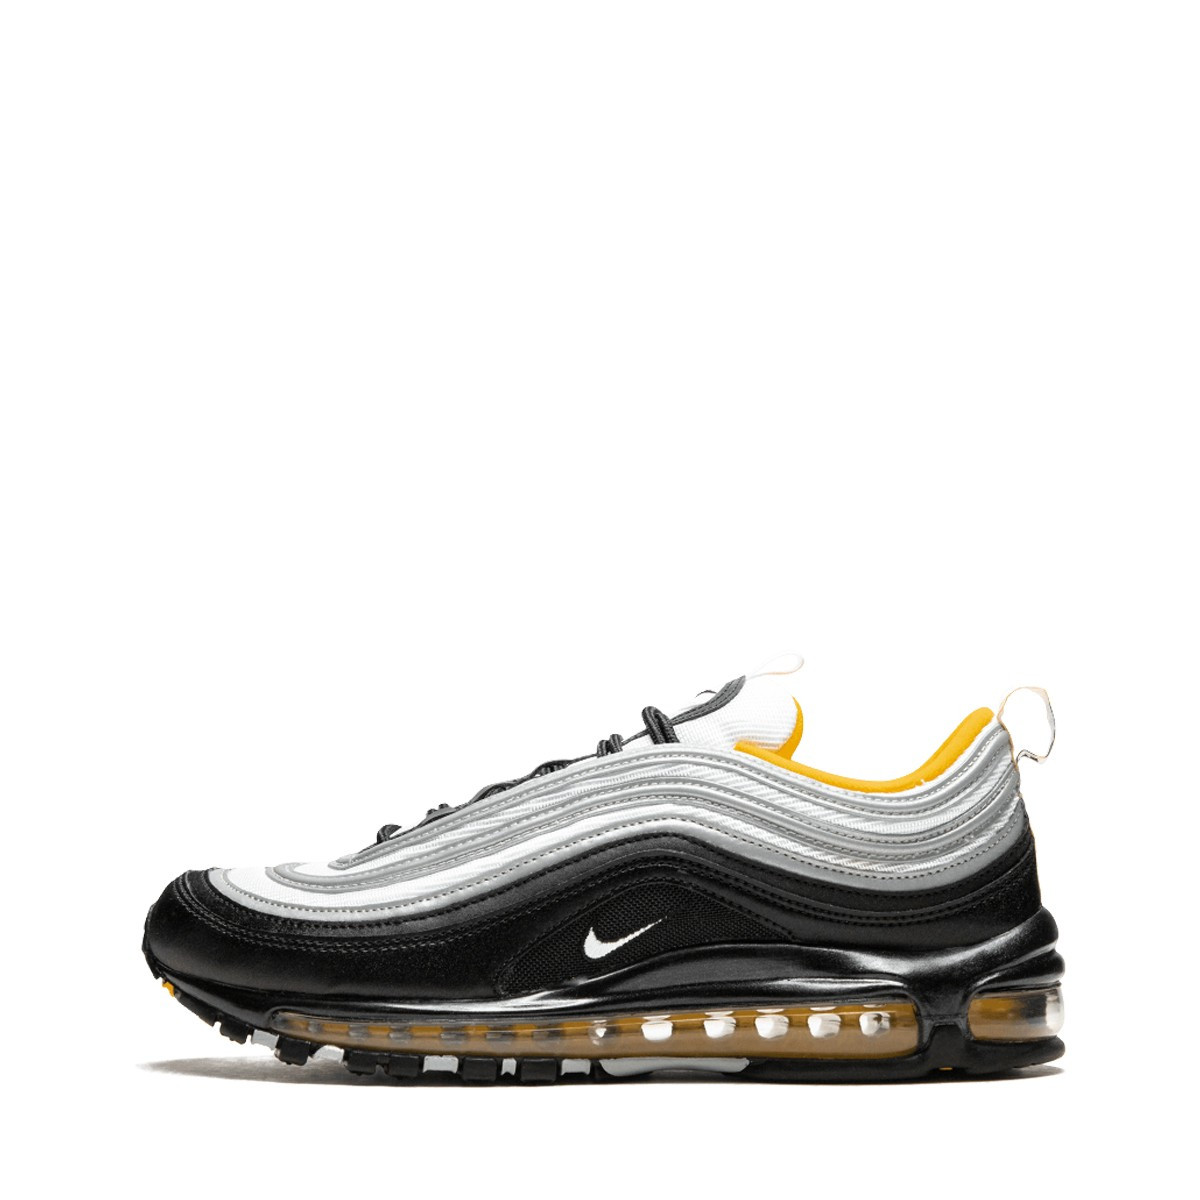 af644512adc Baskets Nike AIR MAX 97 - 921826-008 - DownTownStock.Com